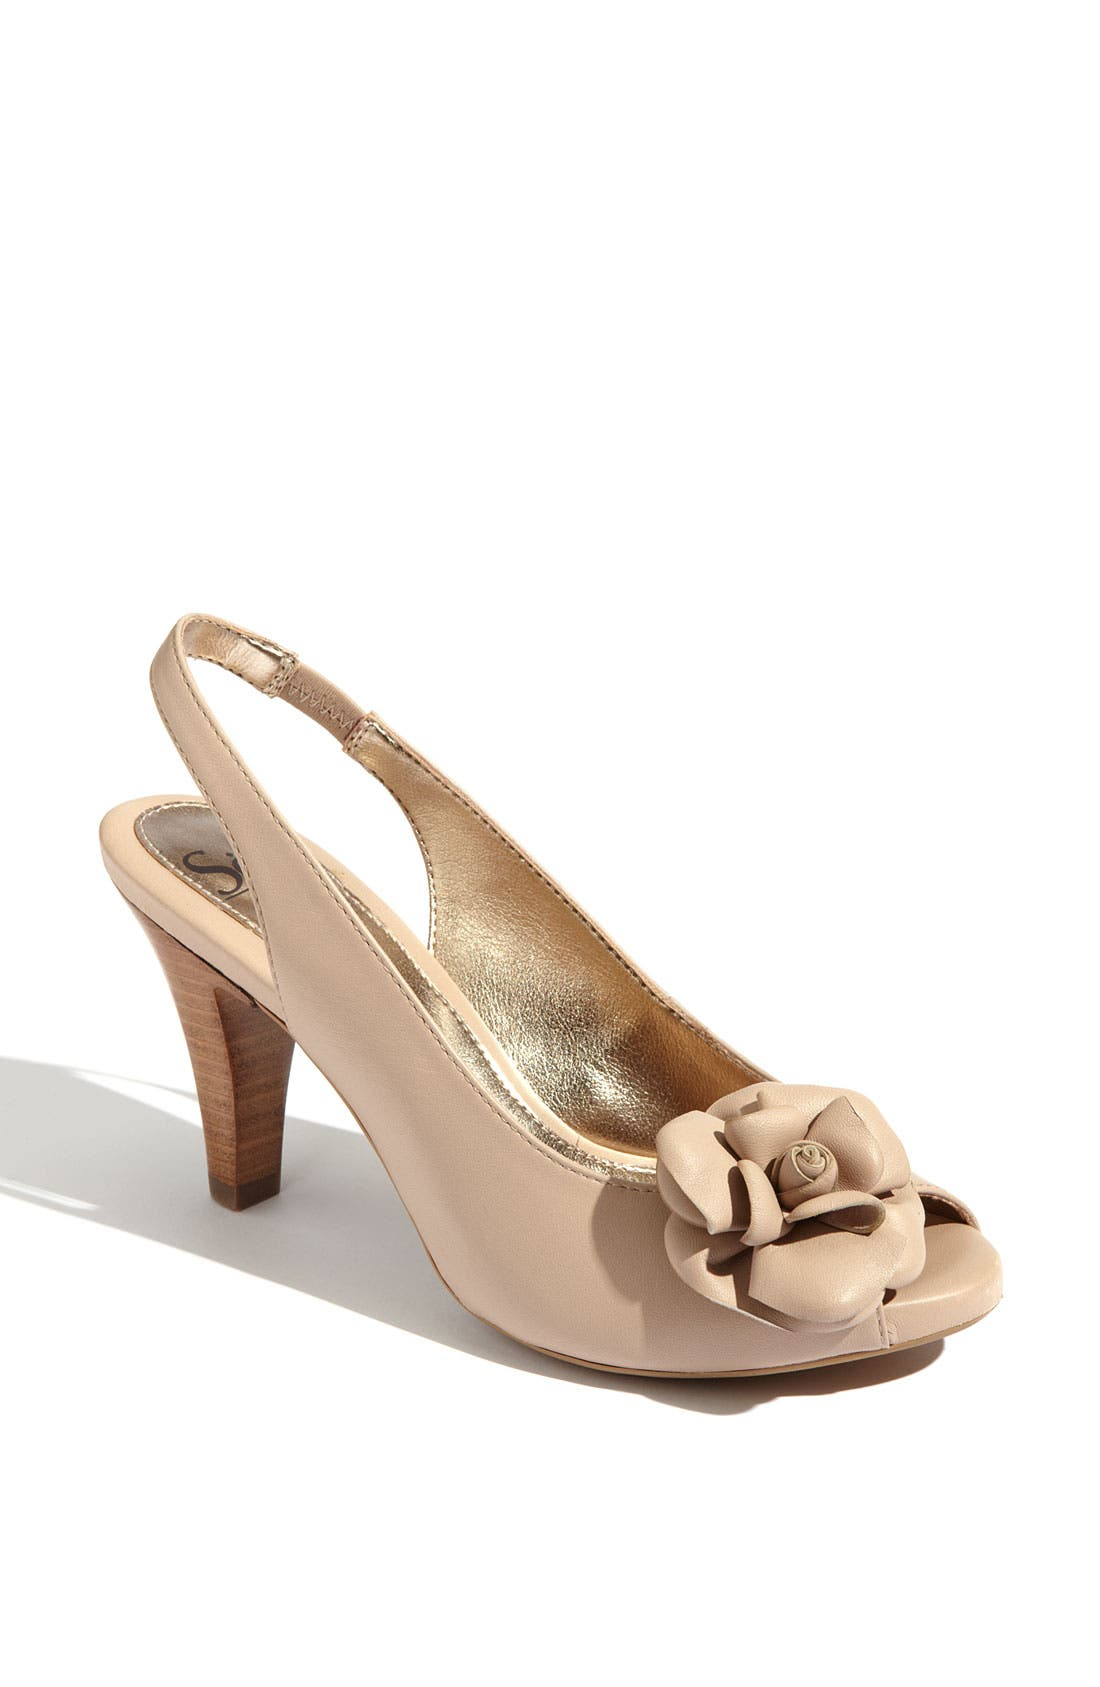 Alternate Image 1 Selected - Söfft 'Gironne' Slingback Sandal